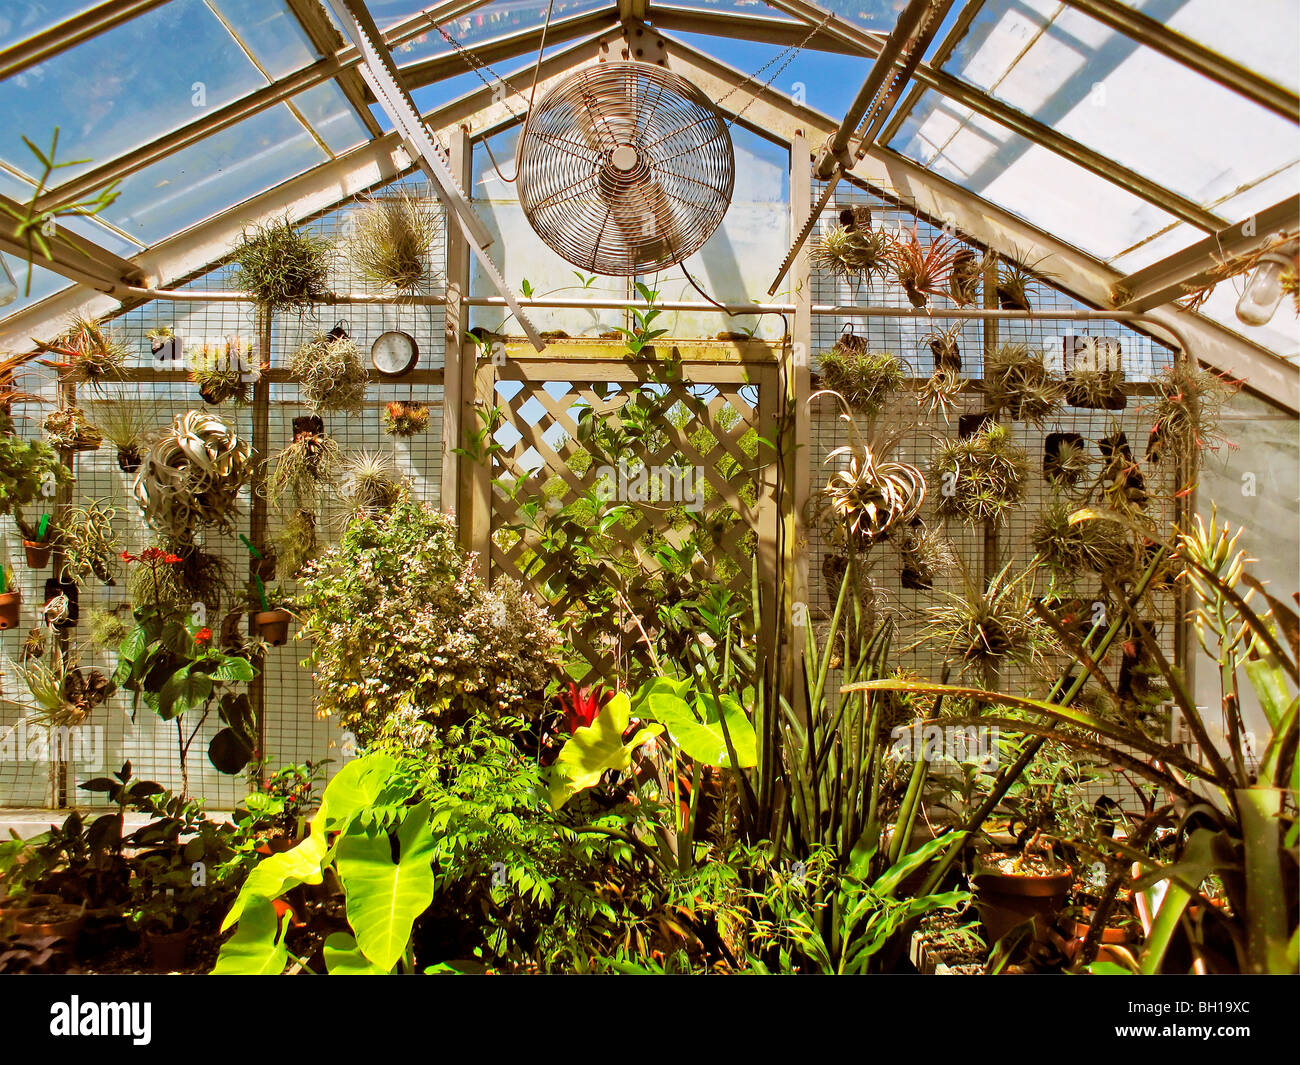 The greenhouse nyc - Greenhouse In Wave Hill Garden Bronx New York